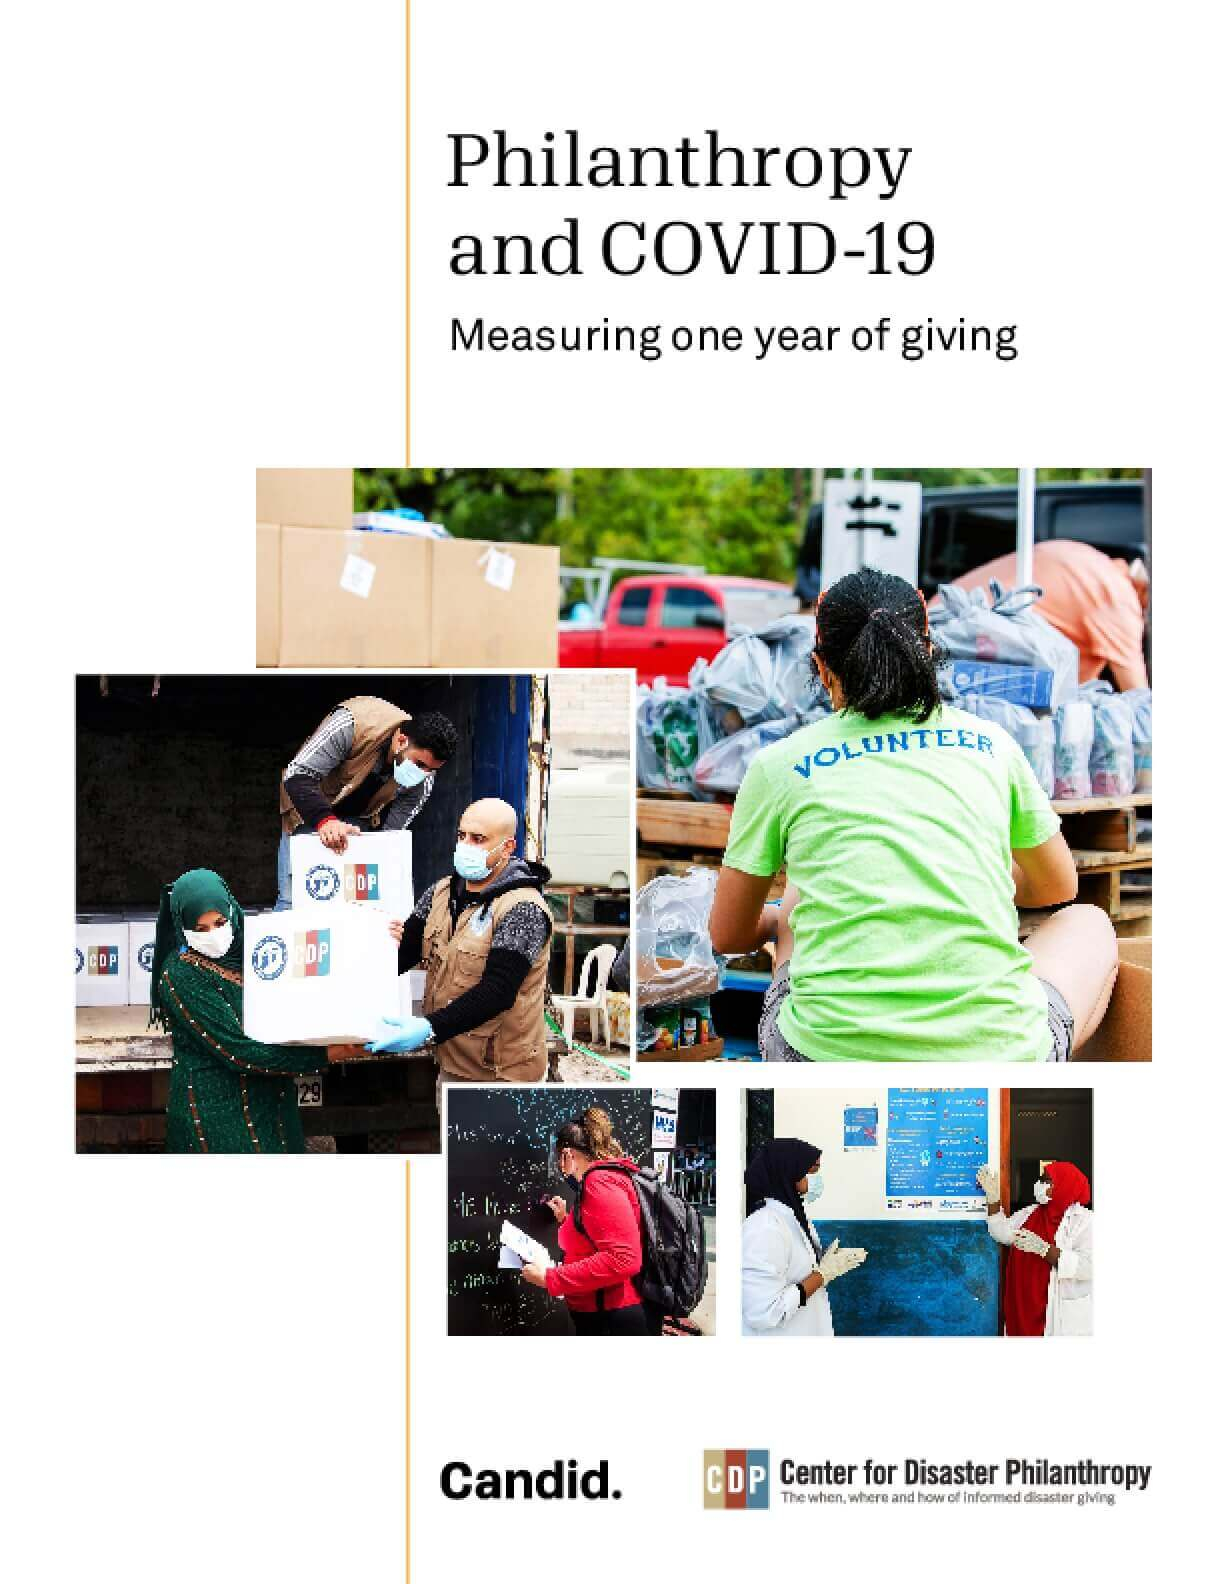 Philanthropy and COVID-19 in 2020: Measuring One Year of Giving